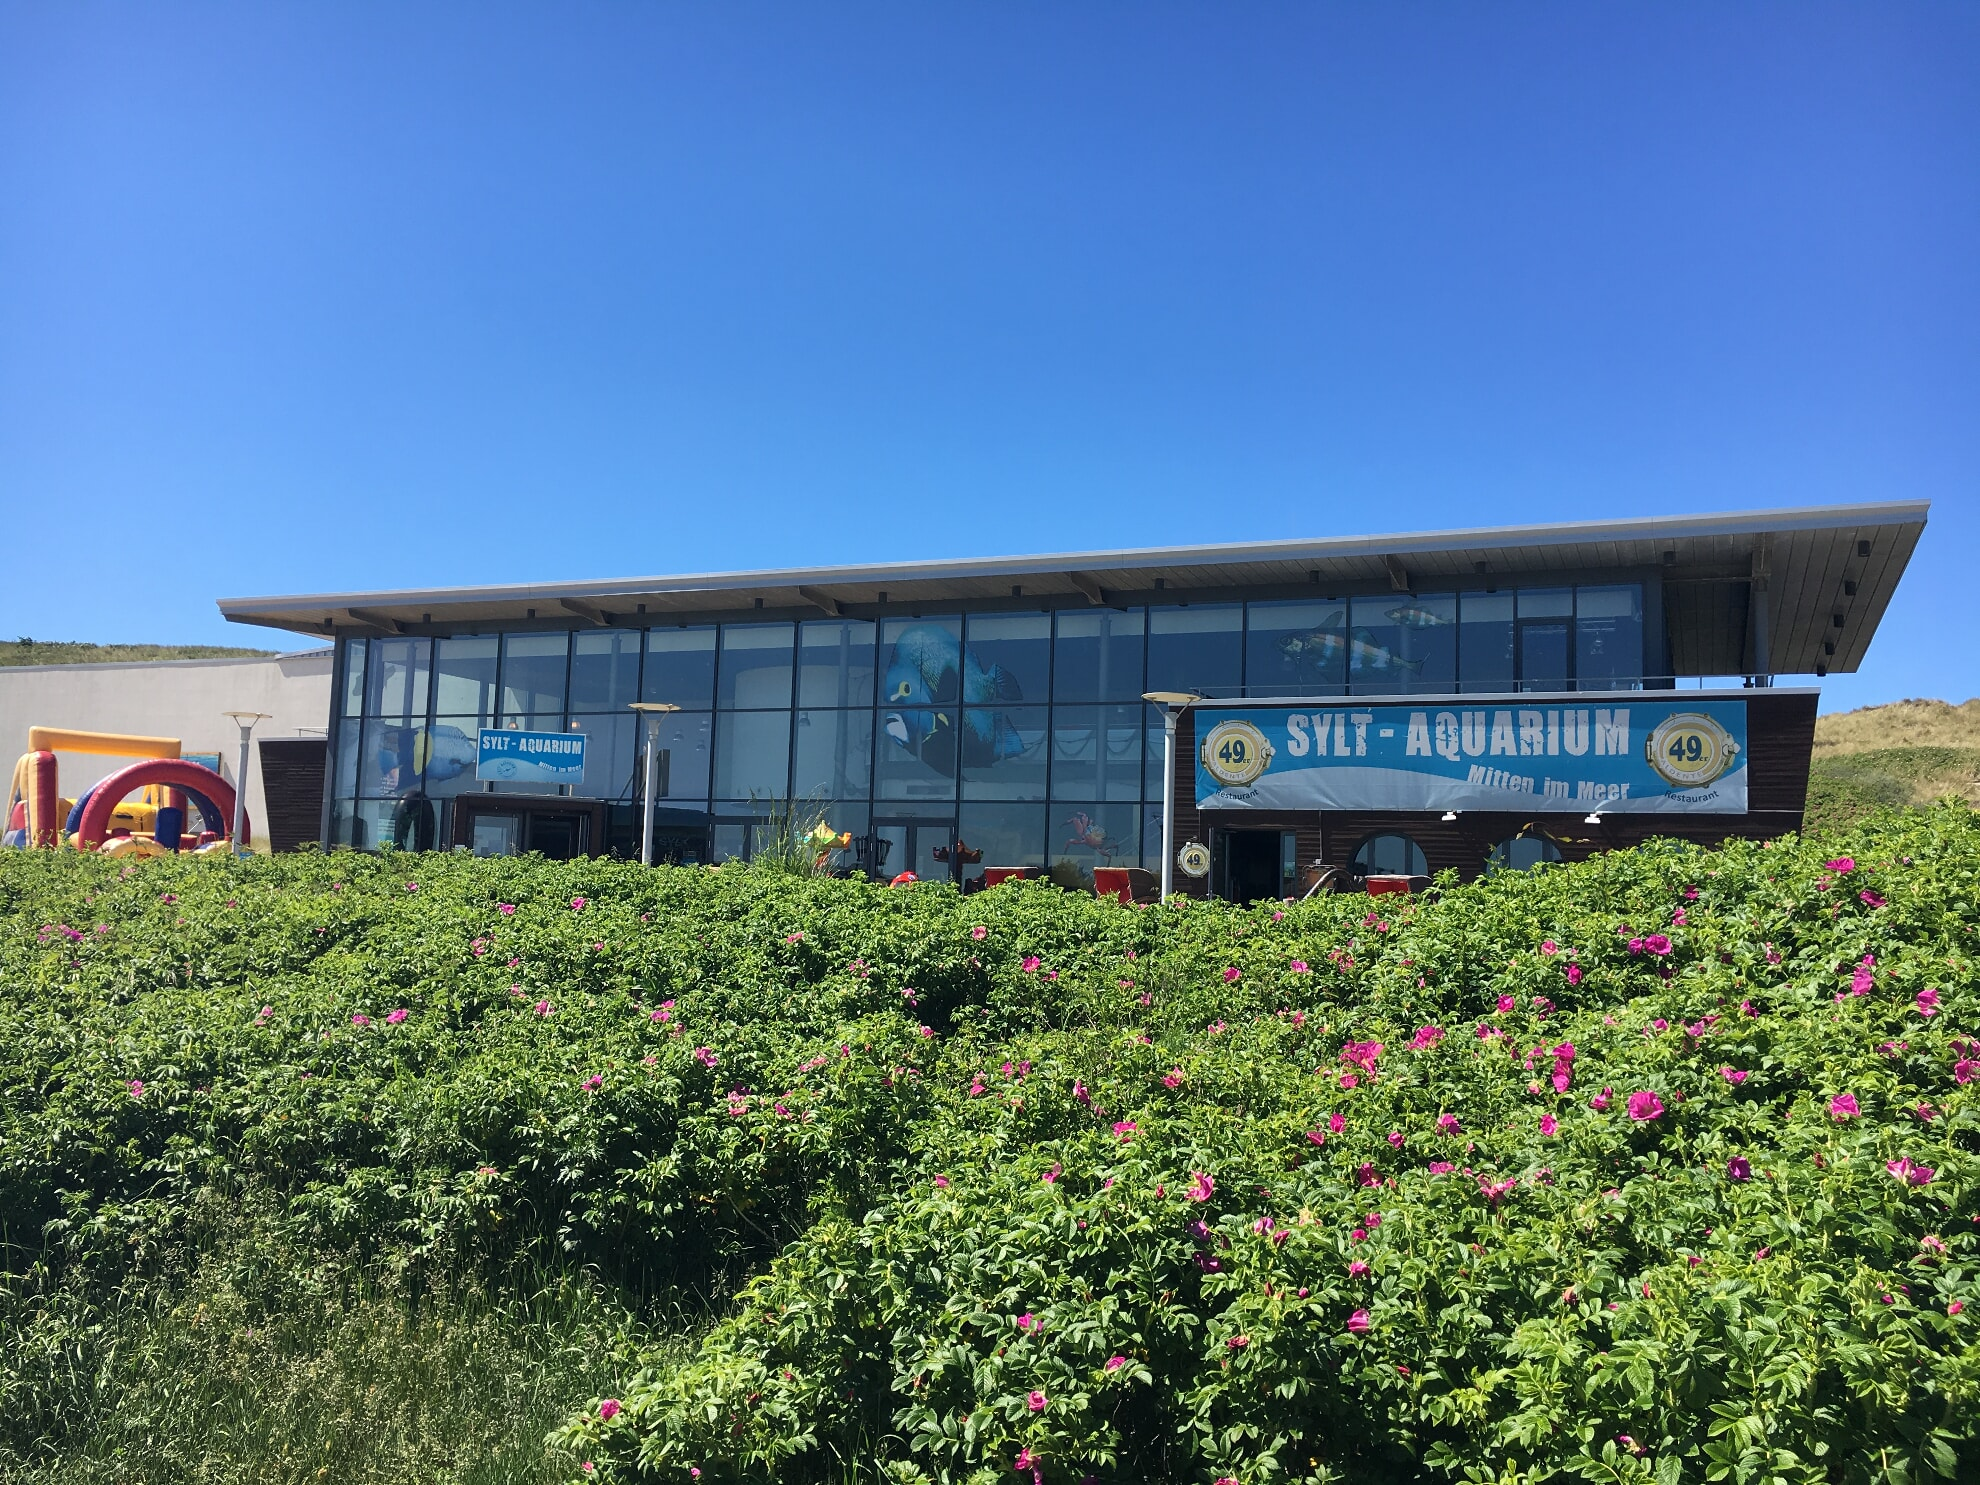 Sylt Aquarium in Westerland